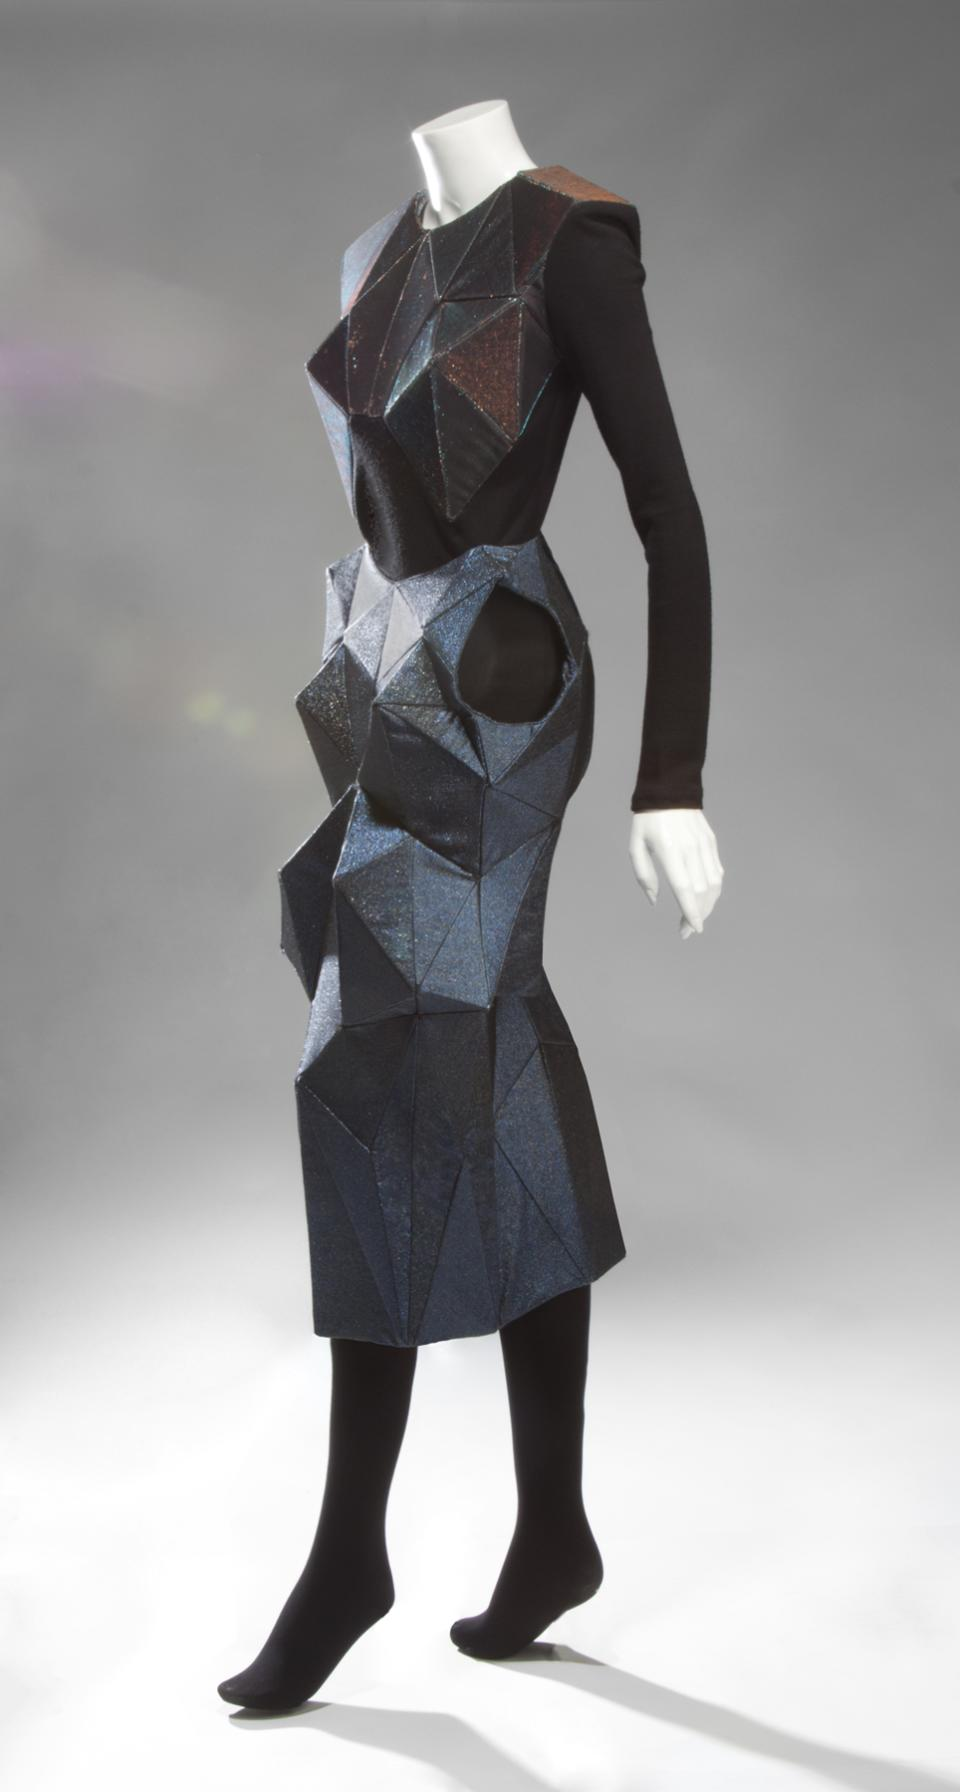 This undated image released by Julien's Auctions shows a Lady Gaga structured dress worn for the cover of Madame Figaro magazine in 2001. This item is part of a star studded auction that includes items from the worlds of Rock 'n Roll, Sports, the Royal family and political memorabilia.  (AP Photo/Julien's Auctions)